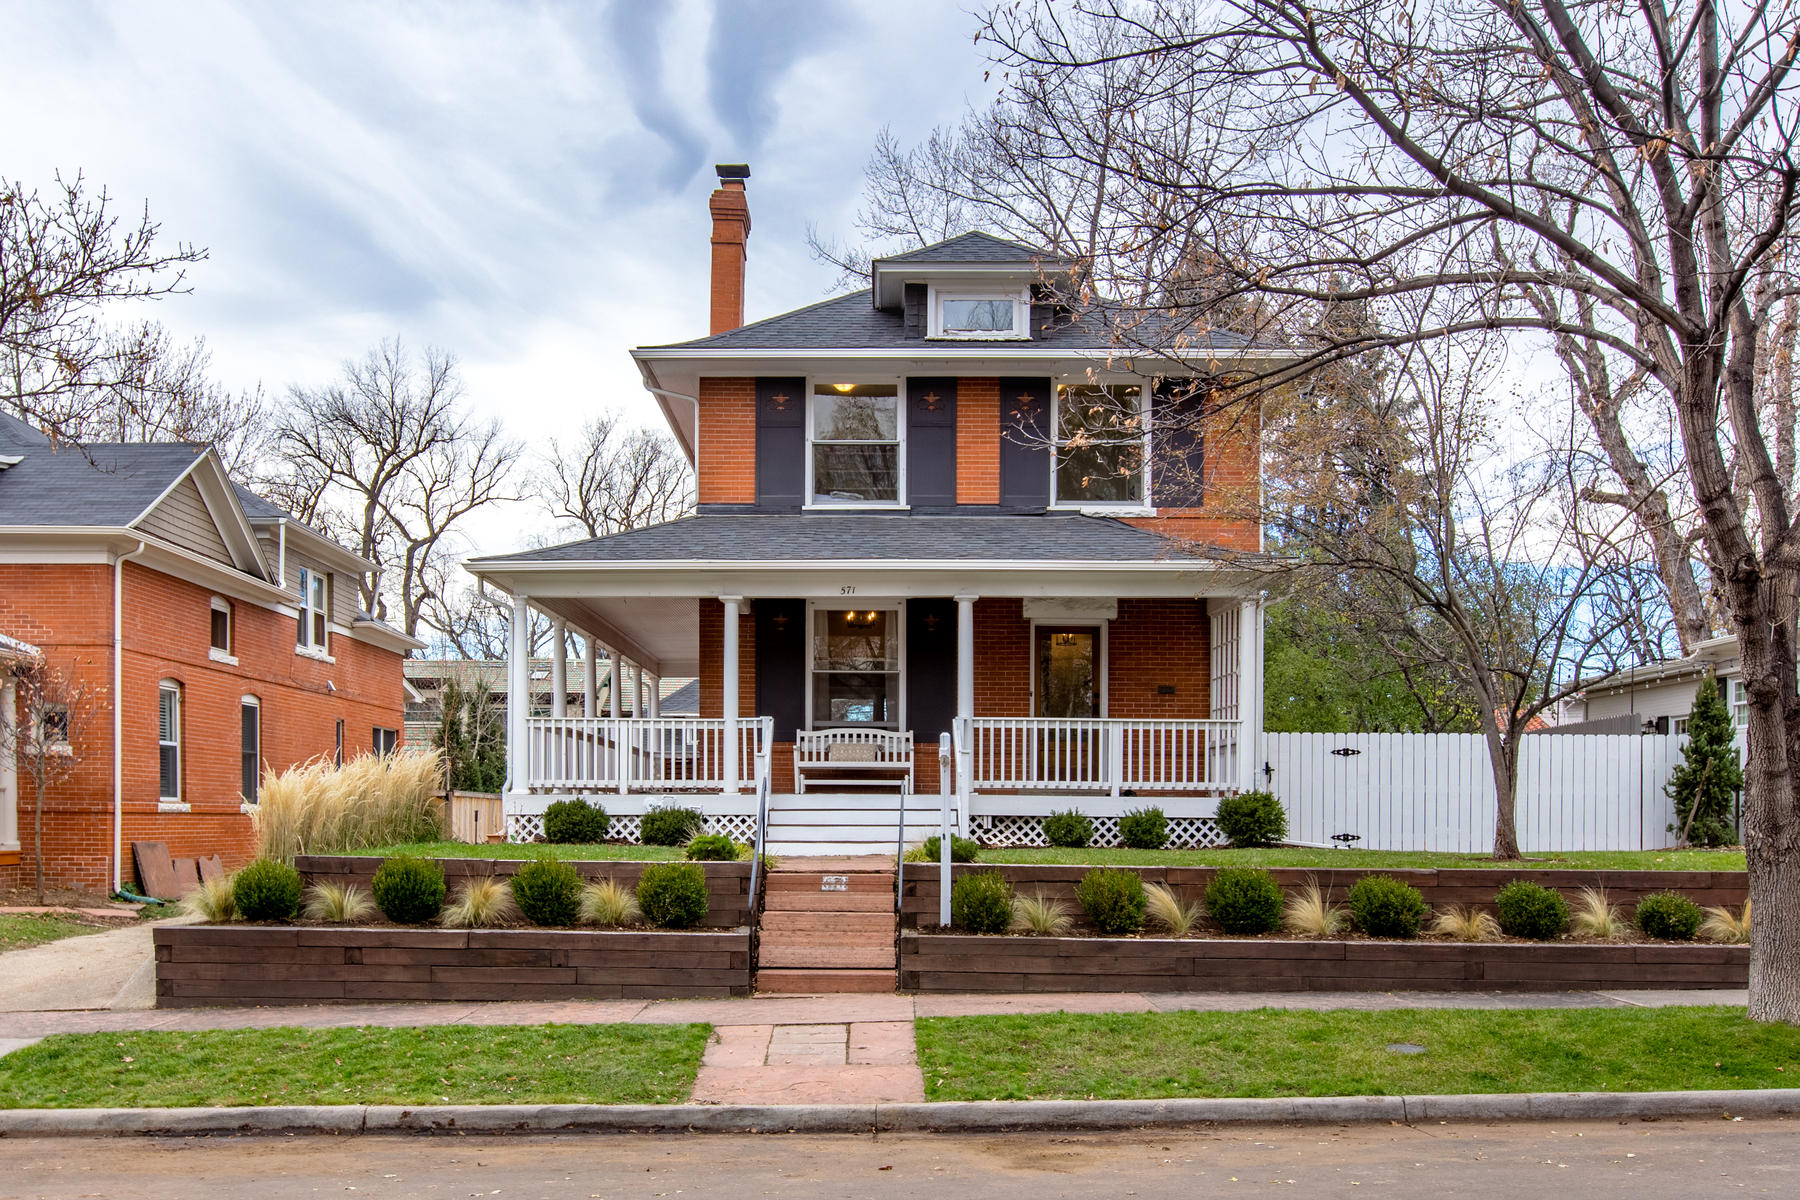 Single Family Home for Active at Beautiful Denver Square on One of Country Club's Favorite Blocks 571 High Street Denver, Colorado 80218 United States